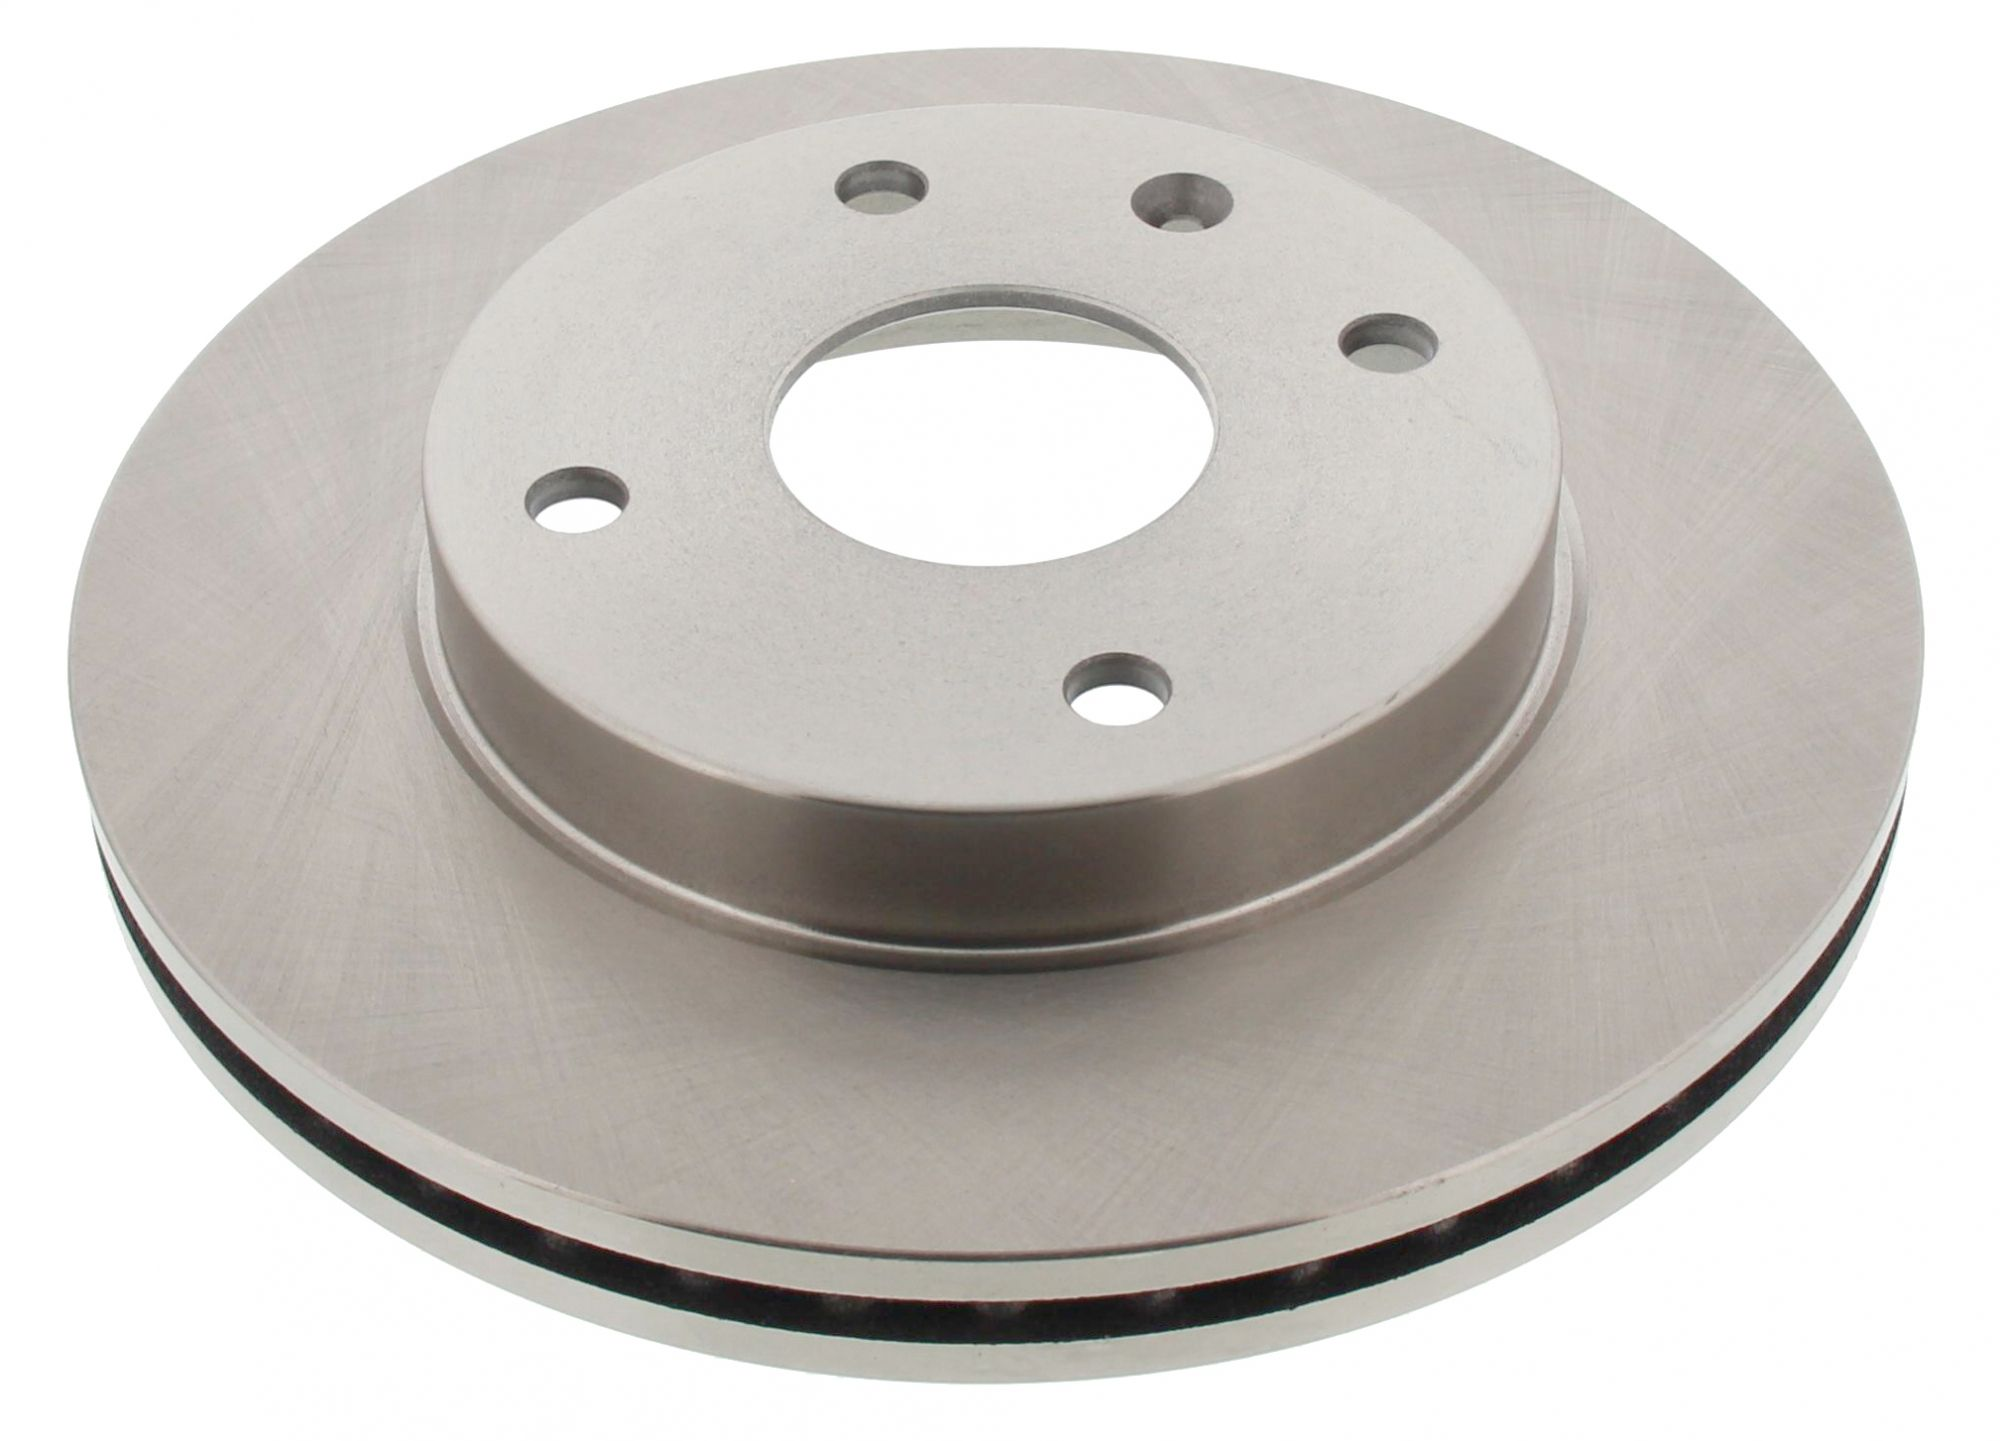 收藏到auto Spare Parts Audia Brake Disc Rotor Drum